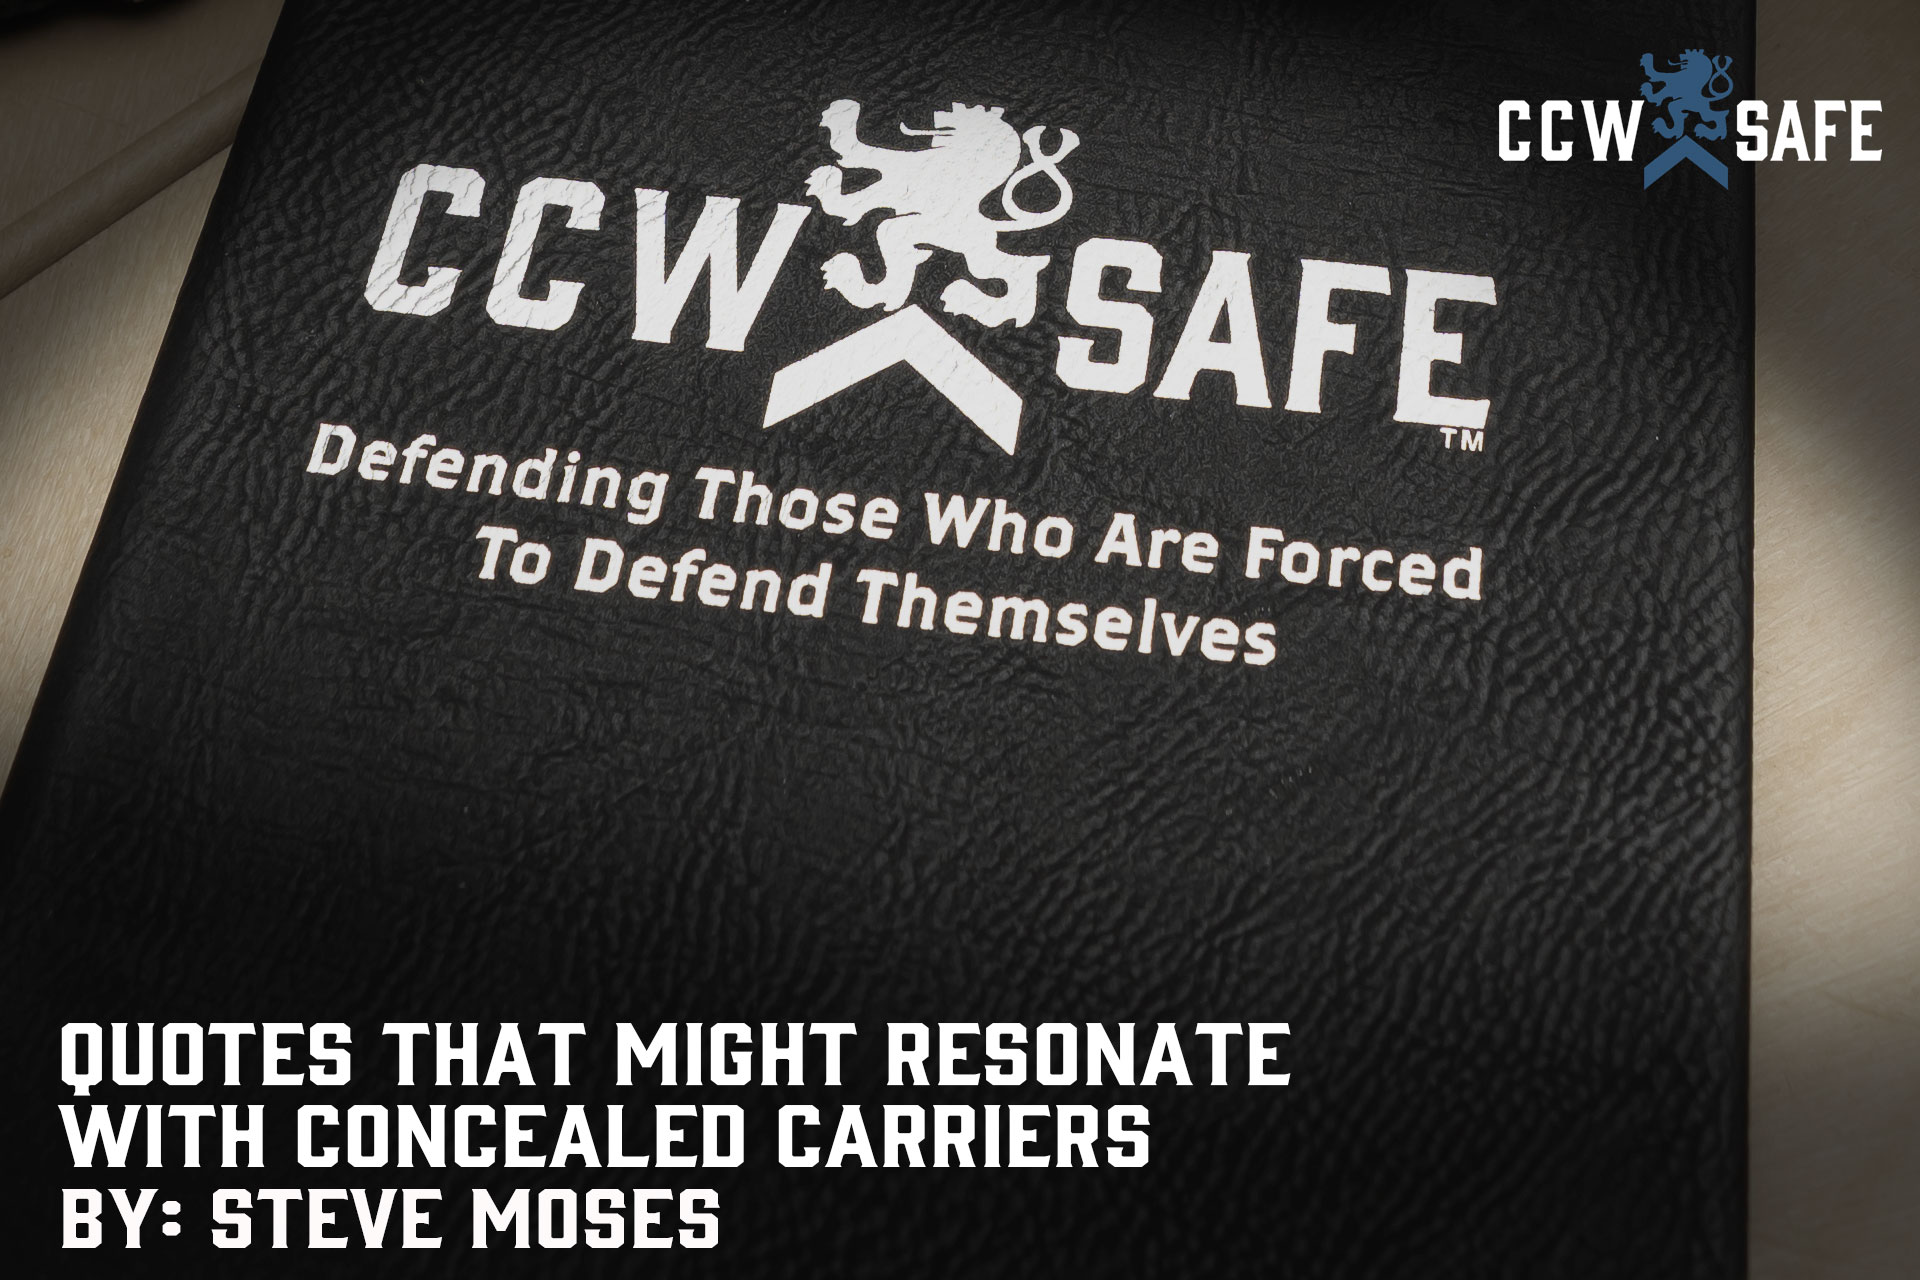 QUOTES THAT MIGHT RESONATE WITH CONCEALED CARRIERS